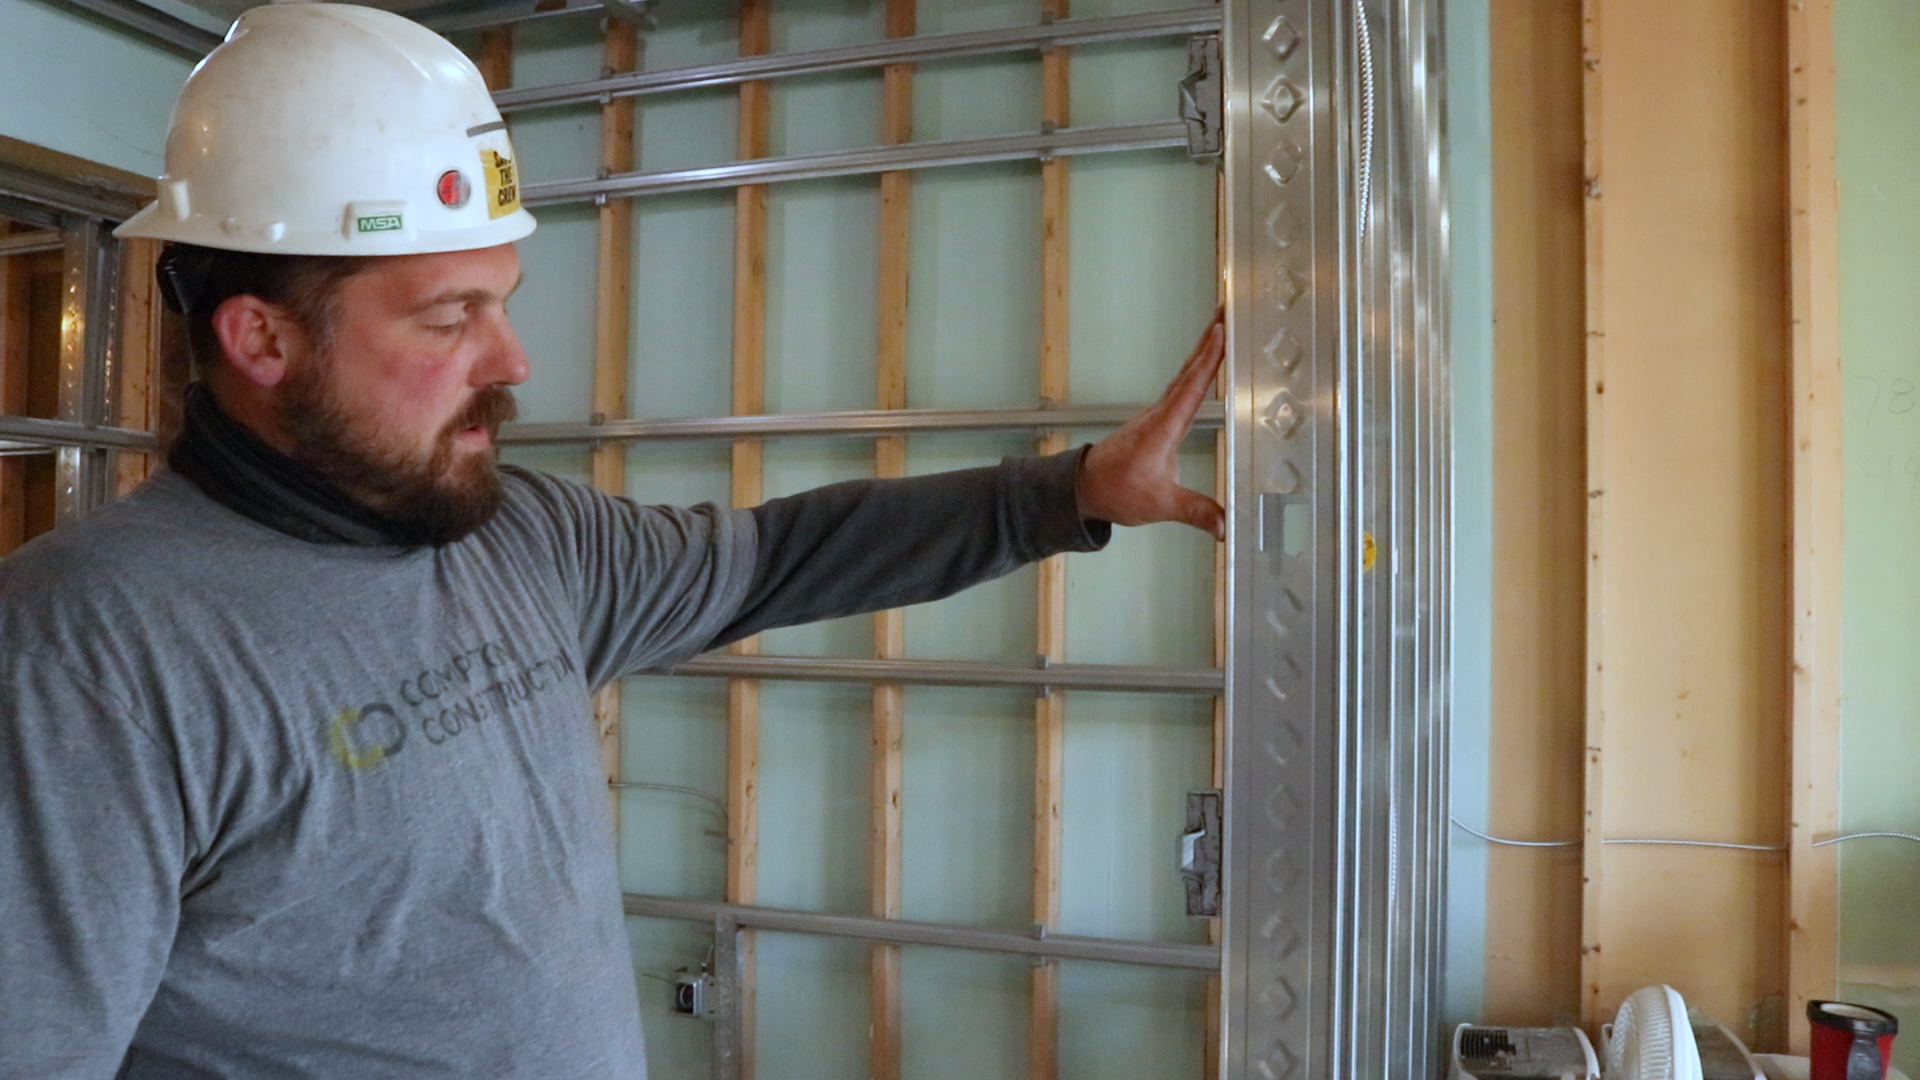 Don demonstrates the floating wall attachments that facilitate soundproofing